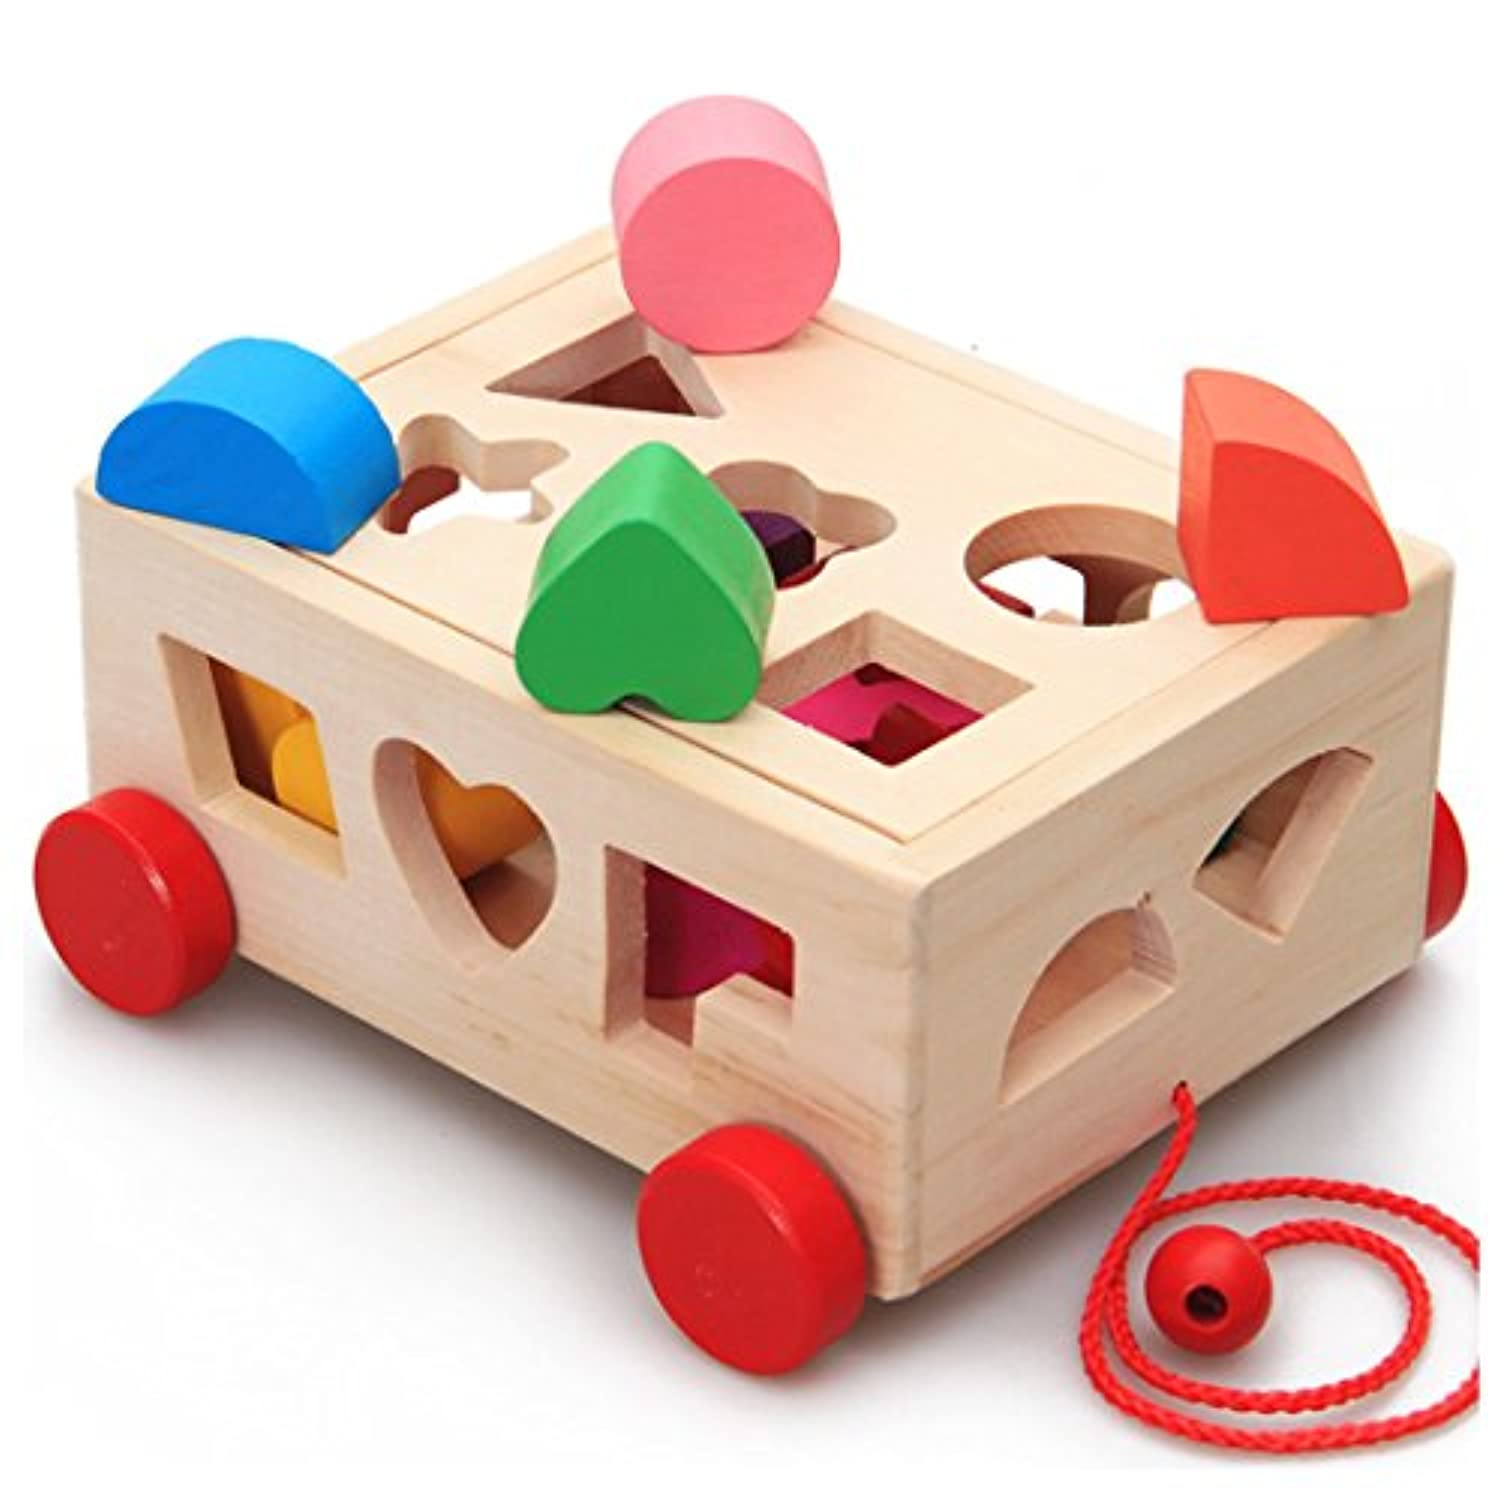 SMATTER Wooden Shape Sorting Box Cart, 15 Hole Cube For Shape Sorter Cognitive And Matching Wooden Toys